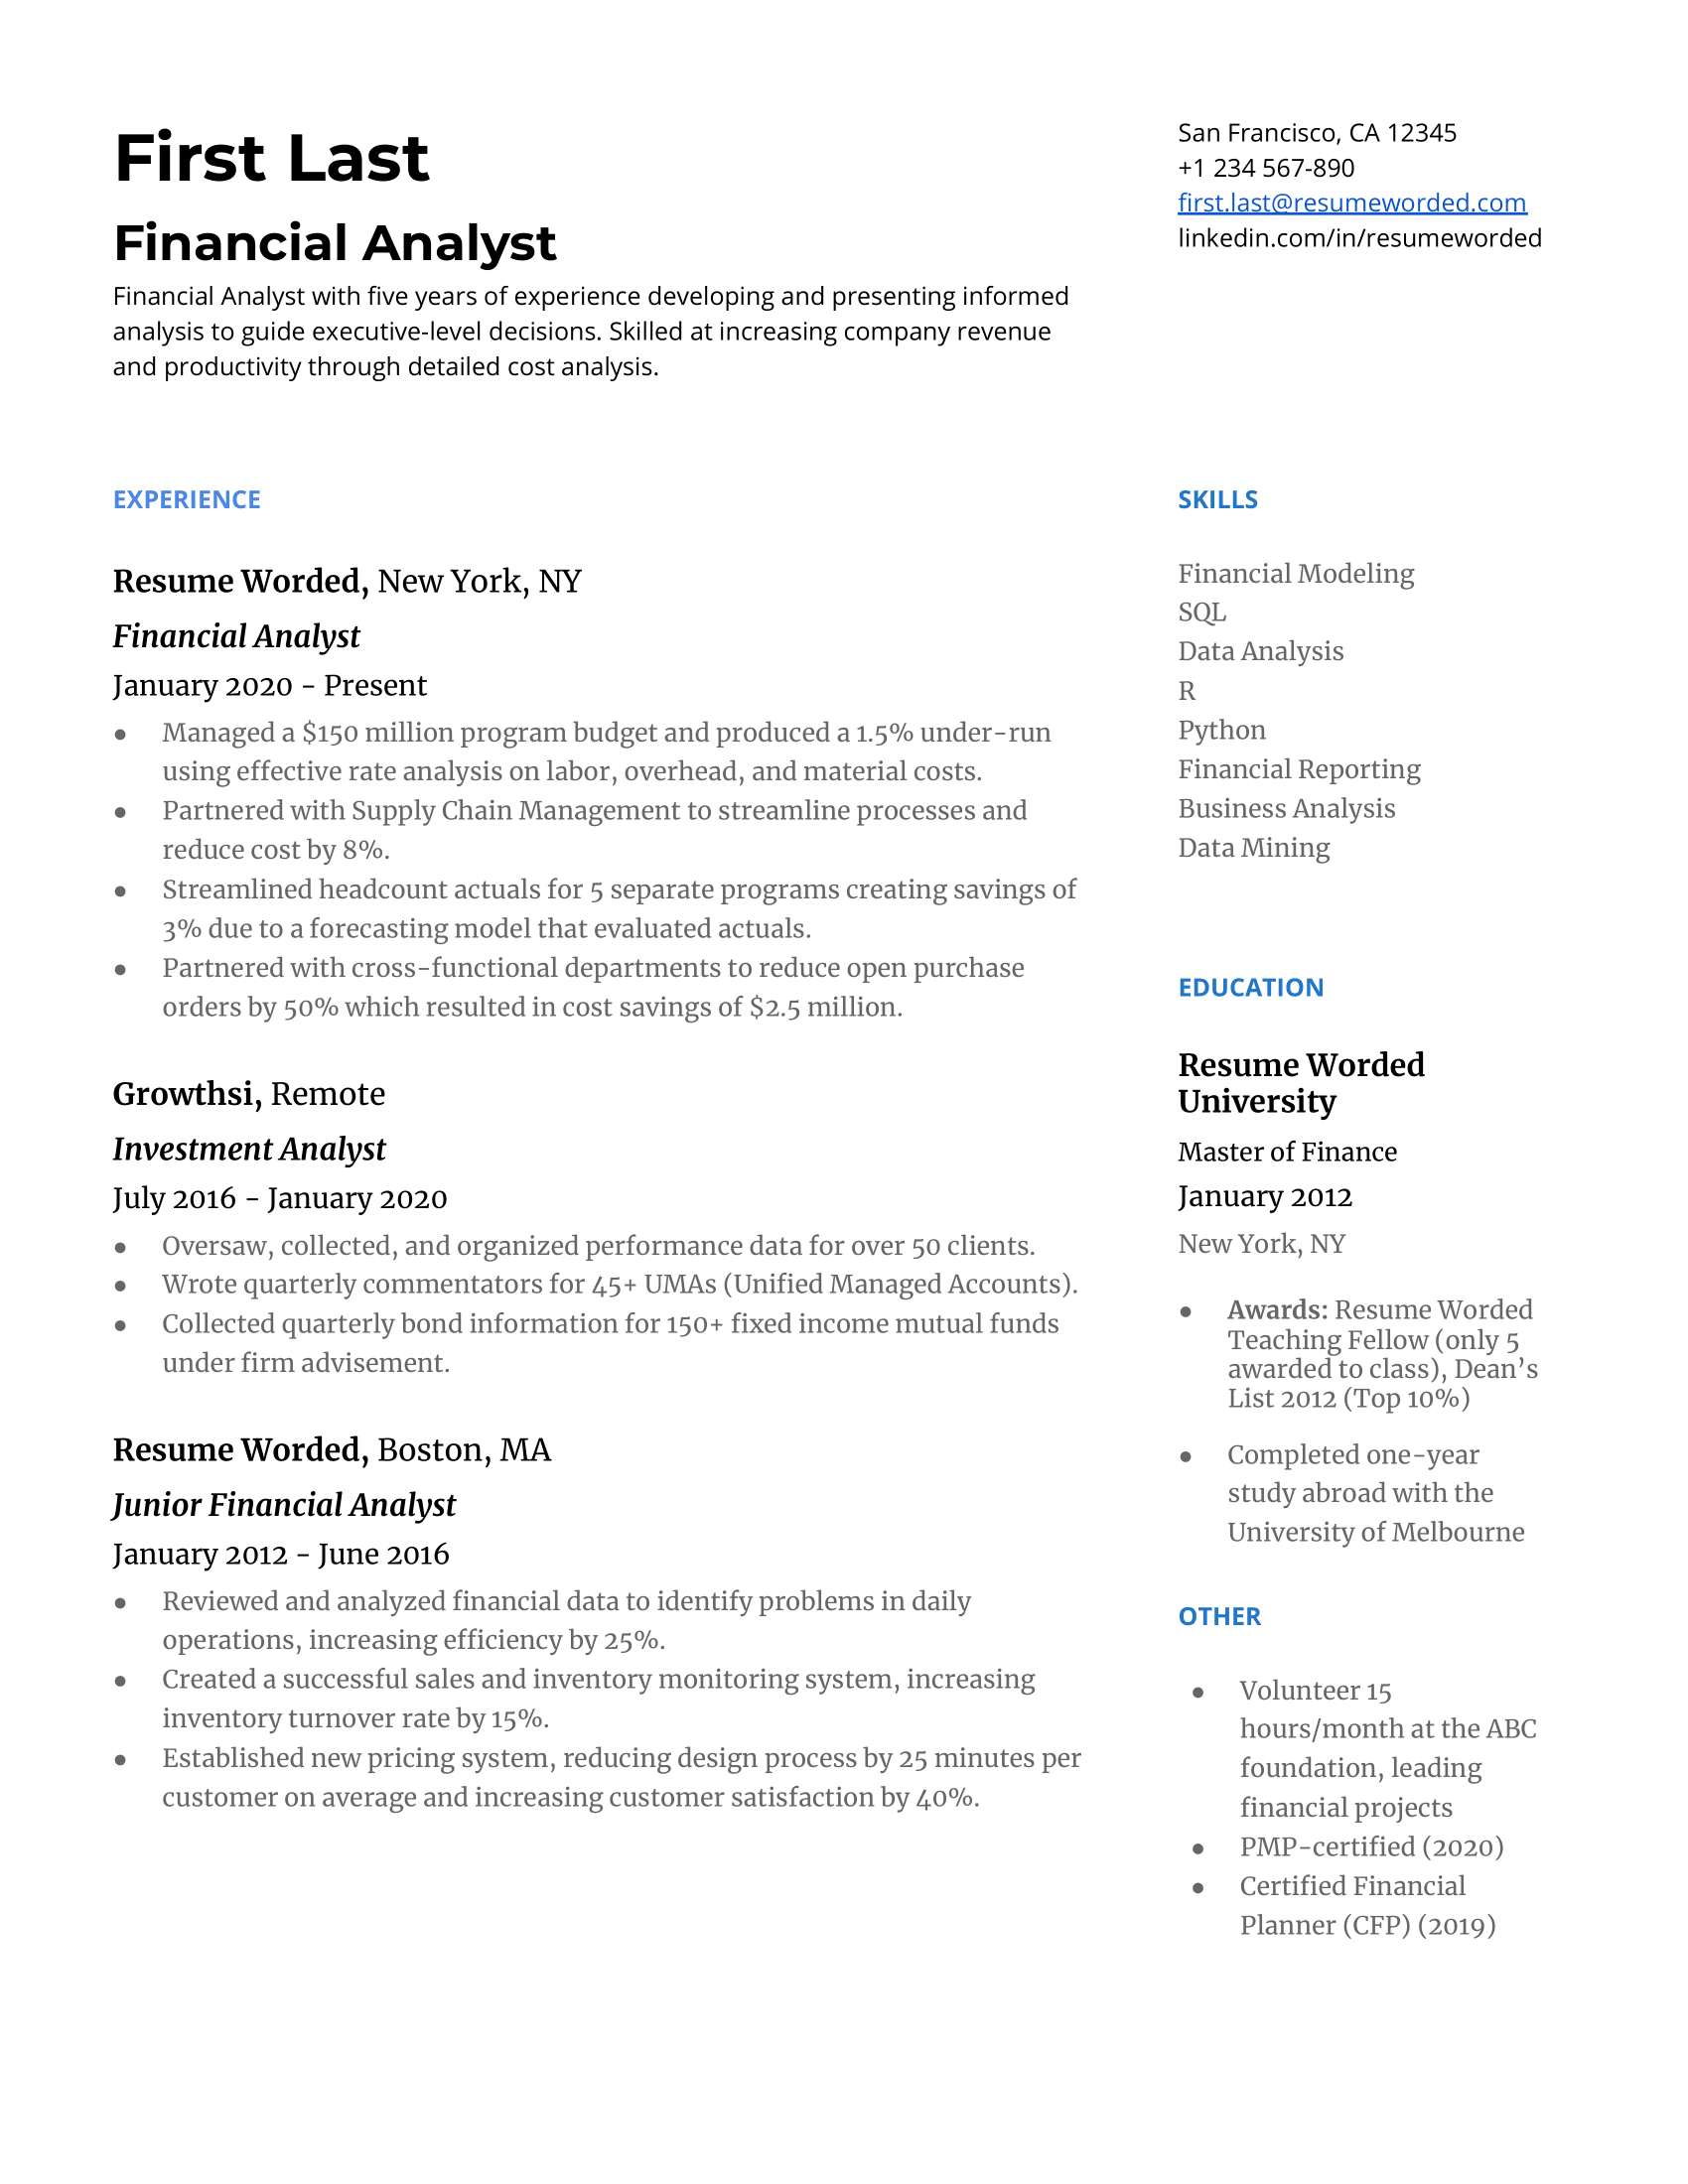 · analysing financial data to draw conclusions and produce forecasts. 6 Financial Analyst Resume Examples For 2021 Resume Worded Resume Worded